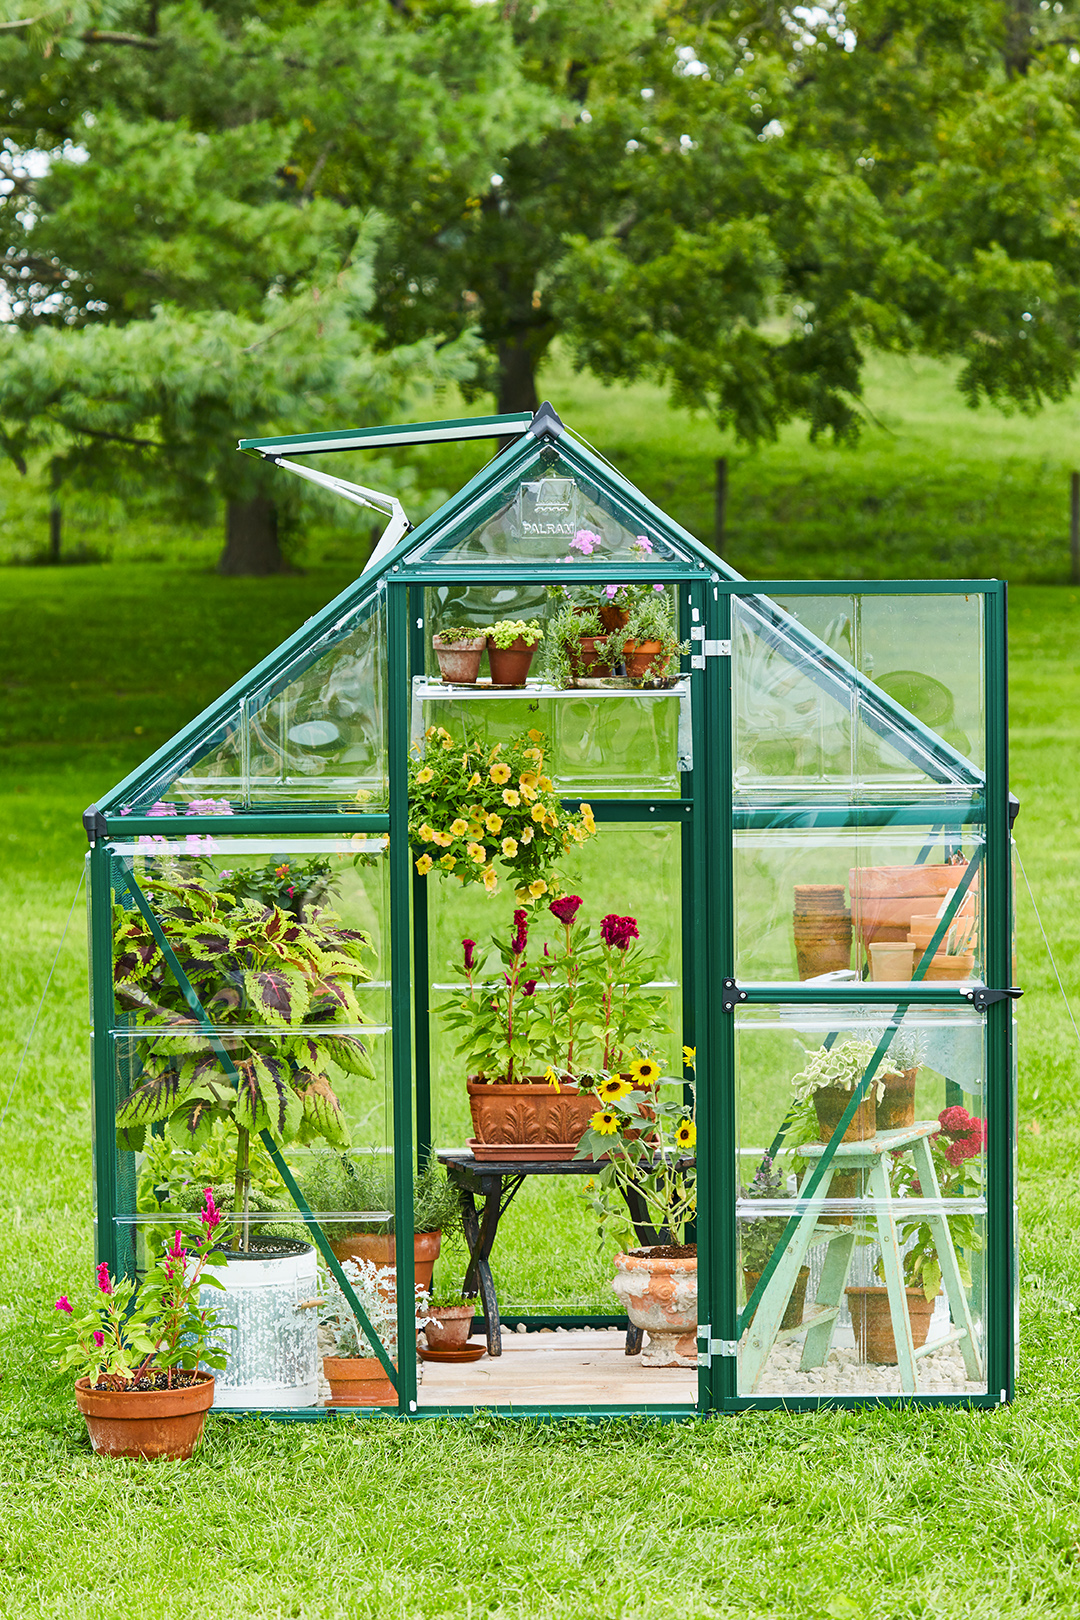 8 Small Greenhouse Kits You Can Assemble Yourself